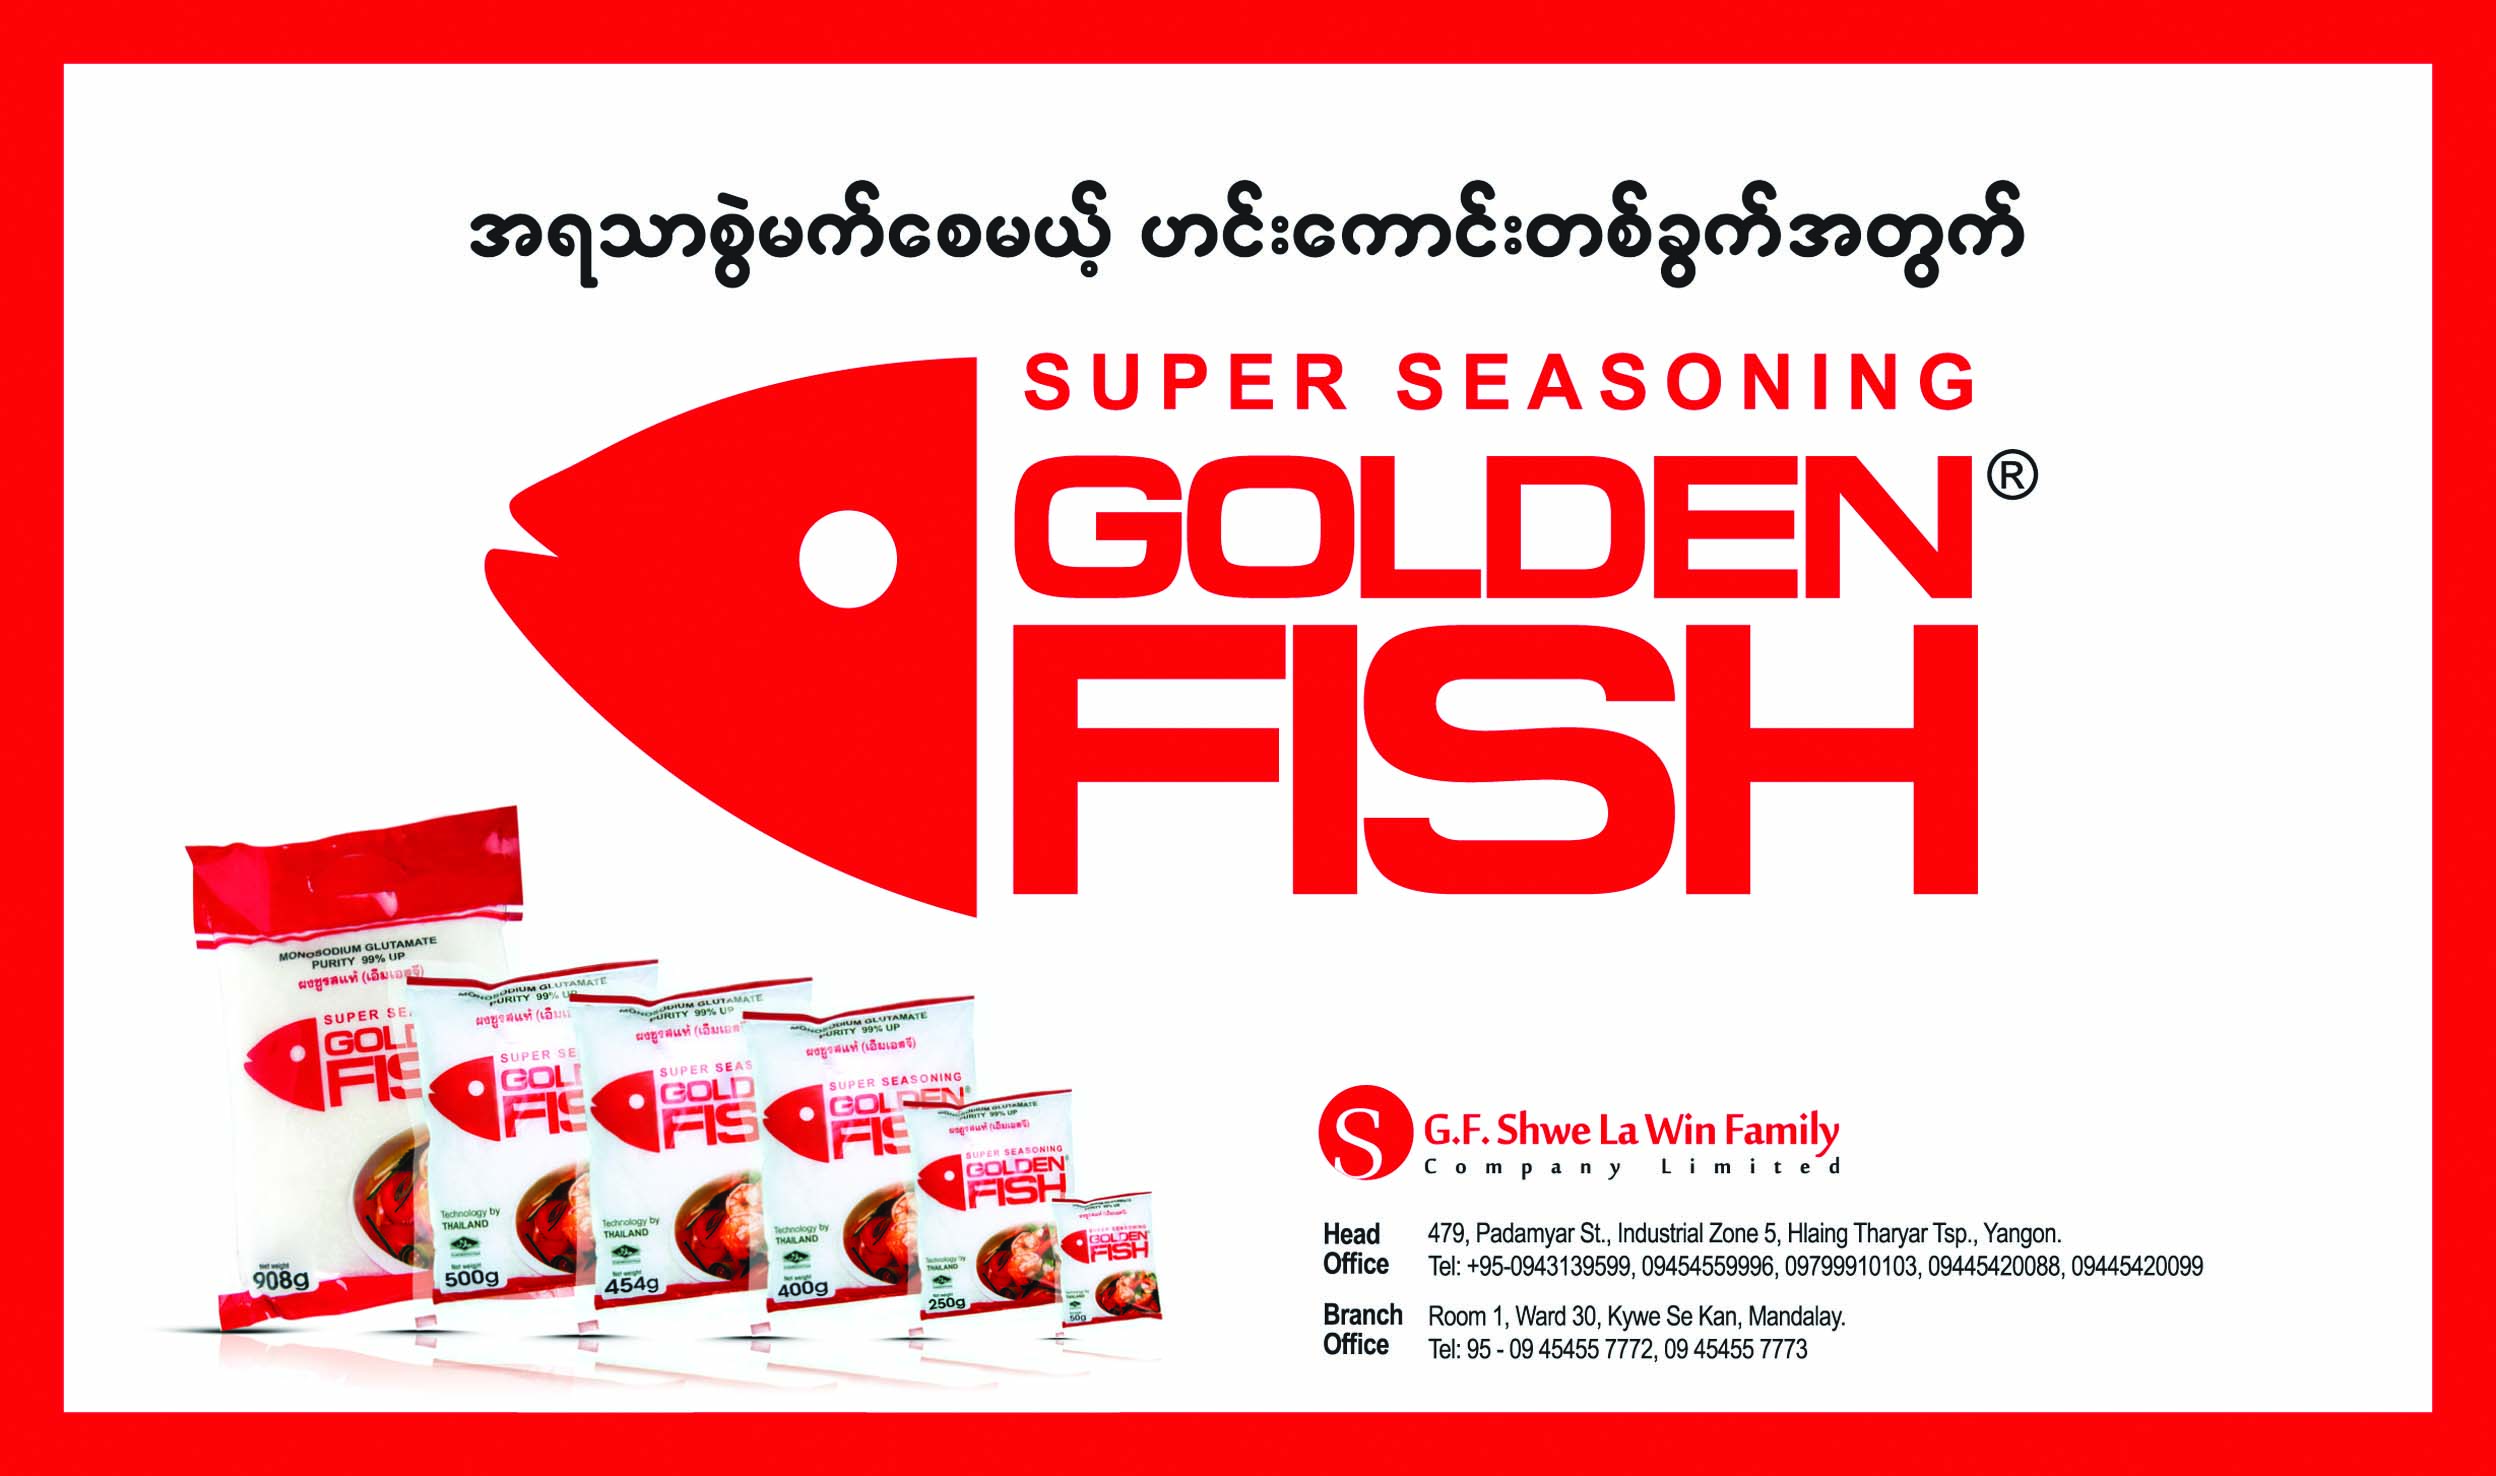 Golden Fish (G.F.Shwe La Win Family)Foodstuffs